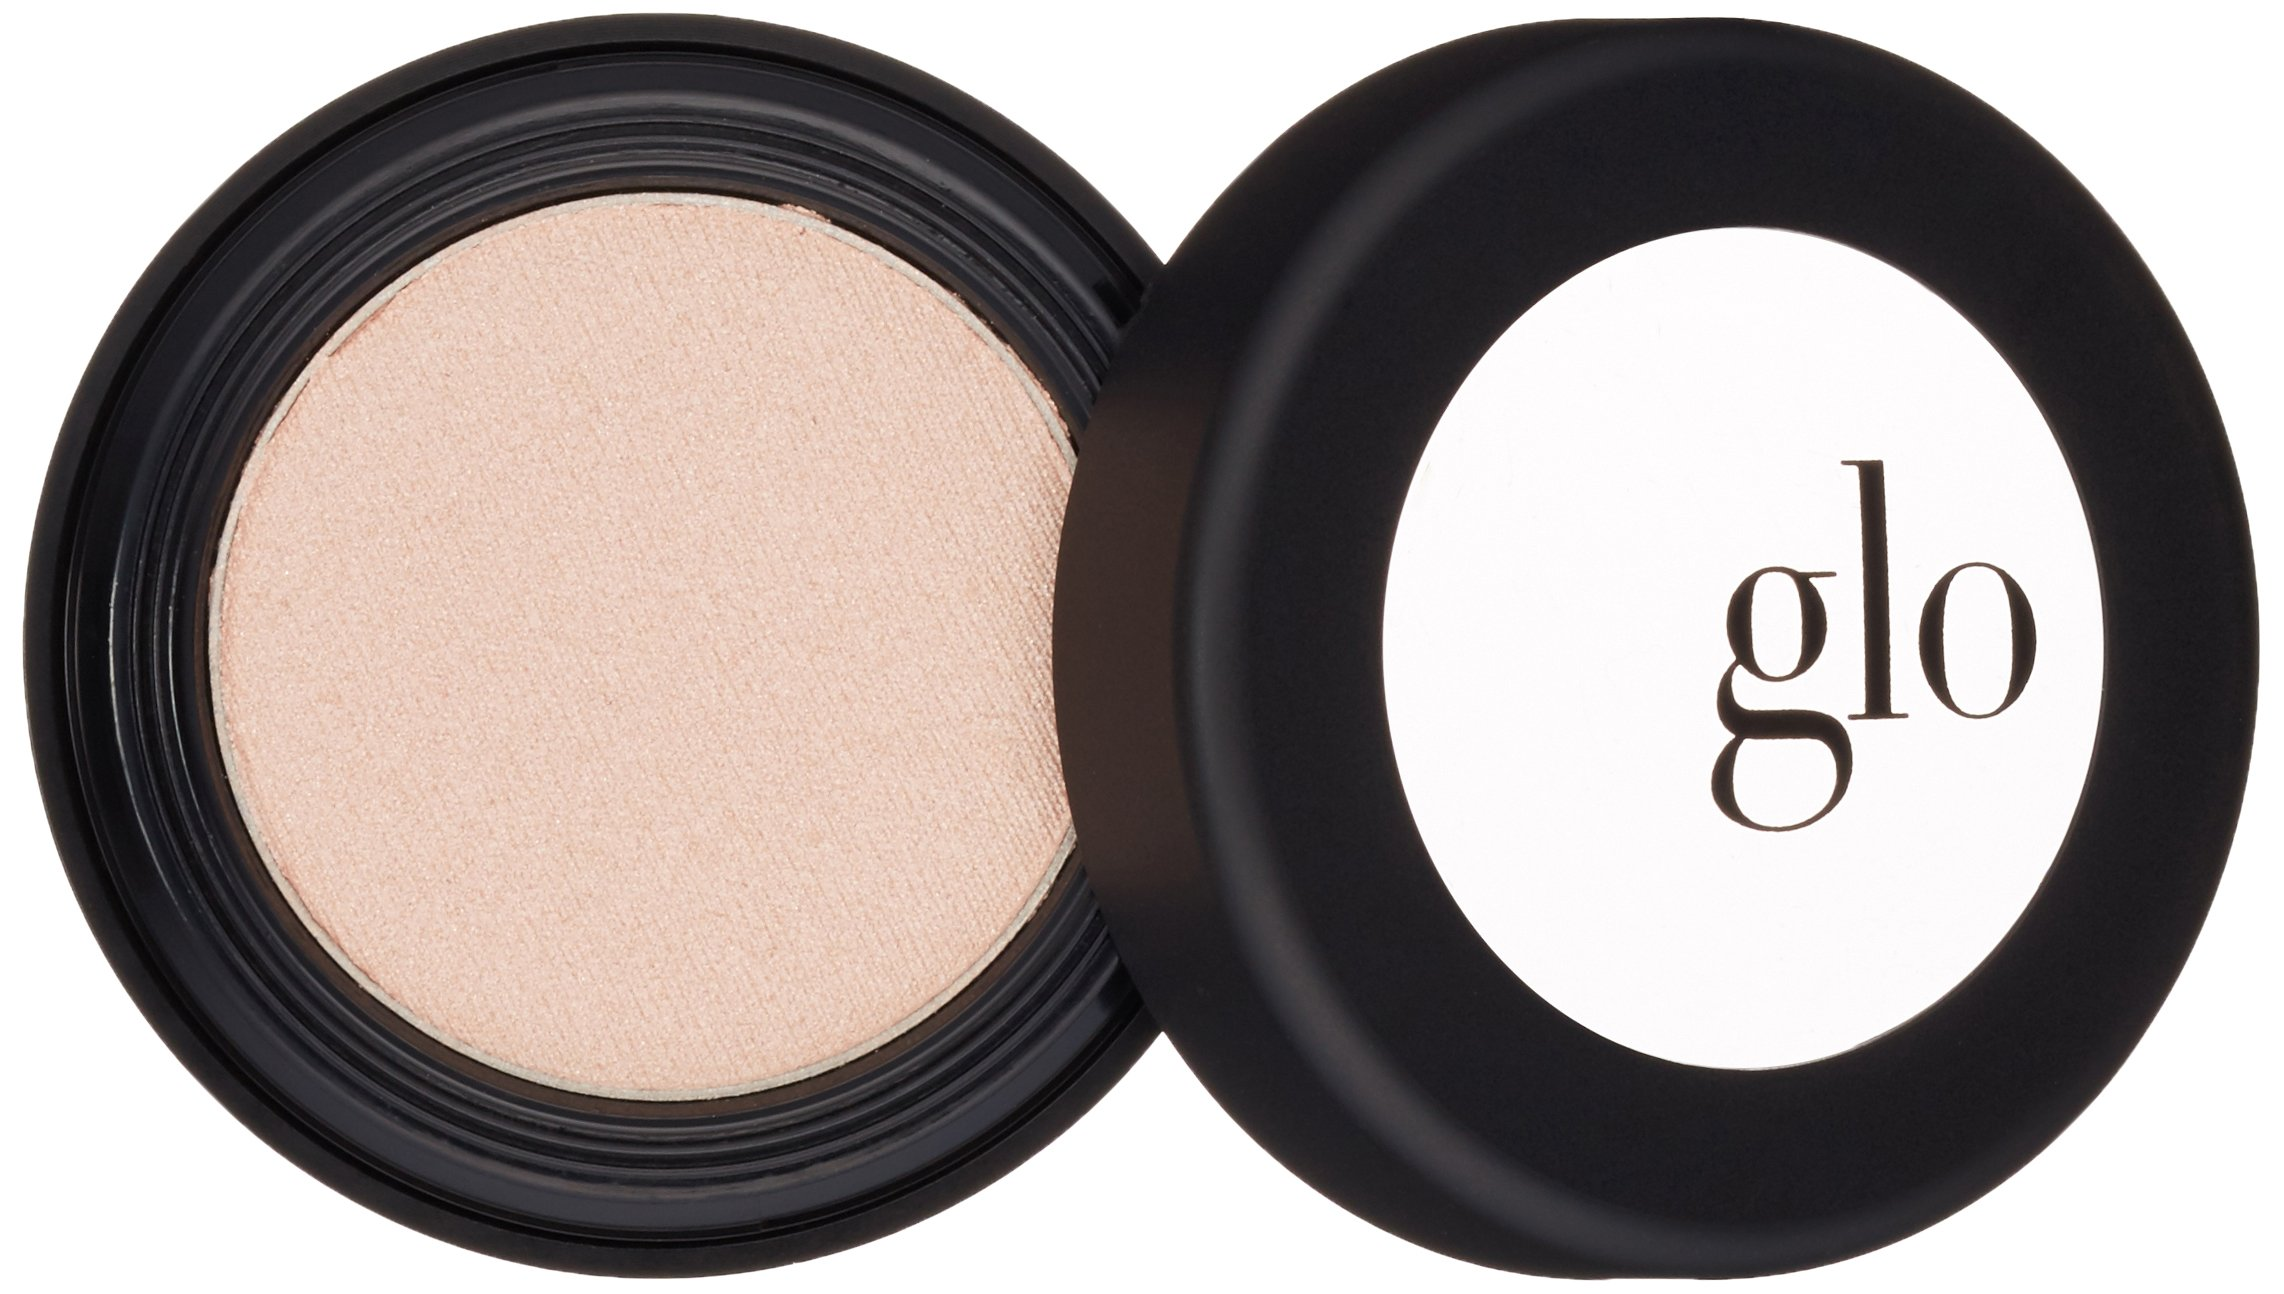 Glo Skin Beauty Eye Shadow - Ribbon - Mineral Makeup Eyeshadow, 12 Shades | Talc Free, Cruelty Free